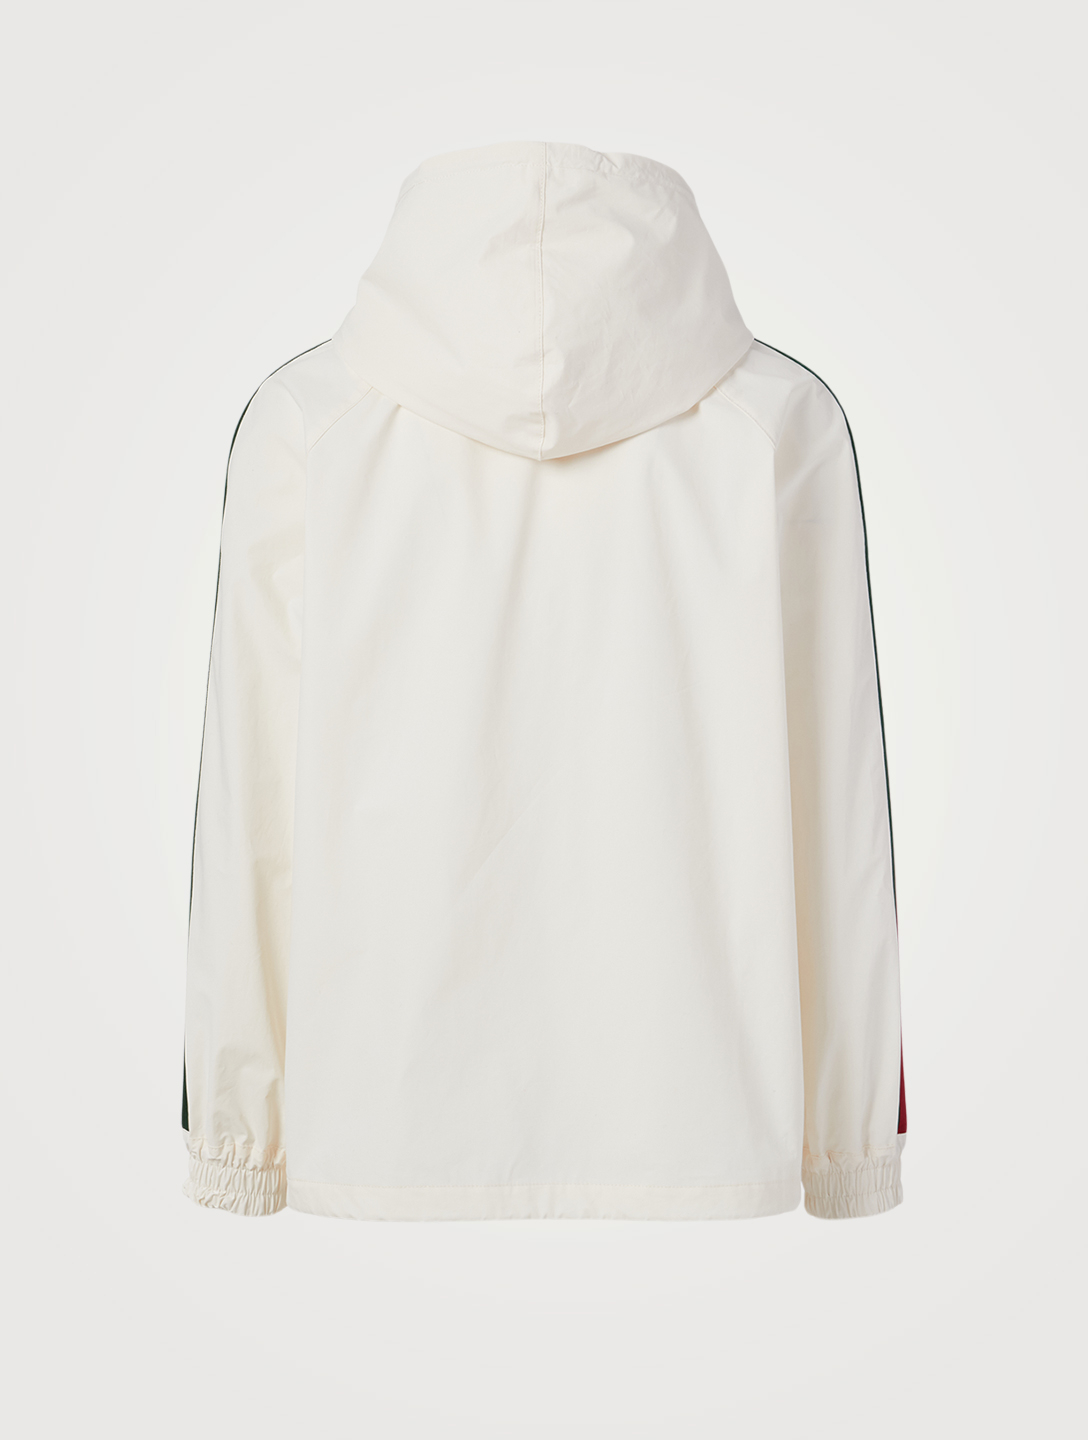 GUCCI Cotton Windbreaker Jacket With Logo Label Men's White